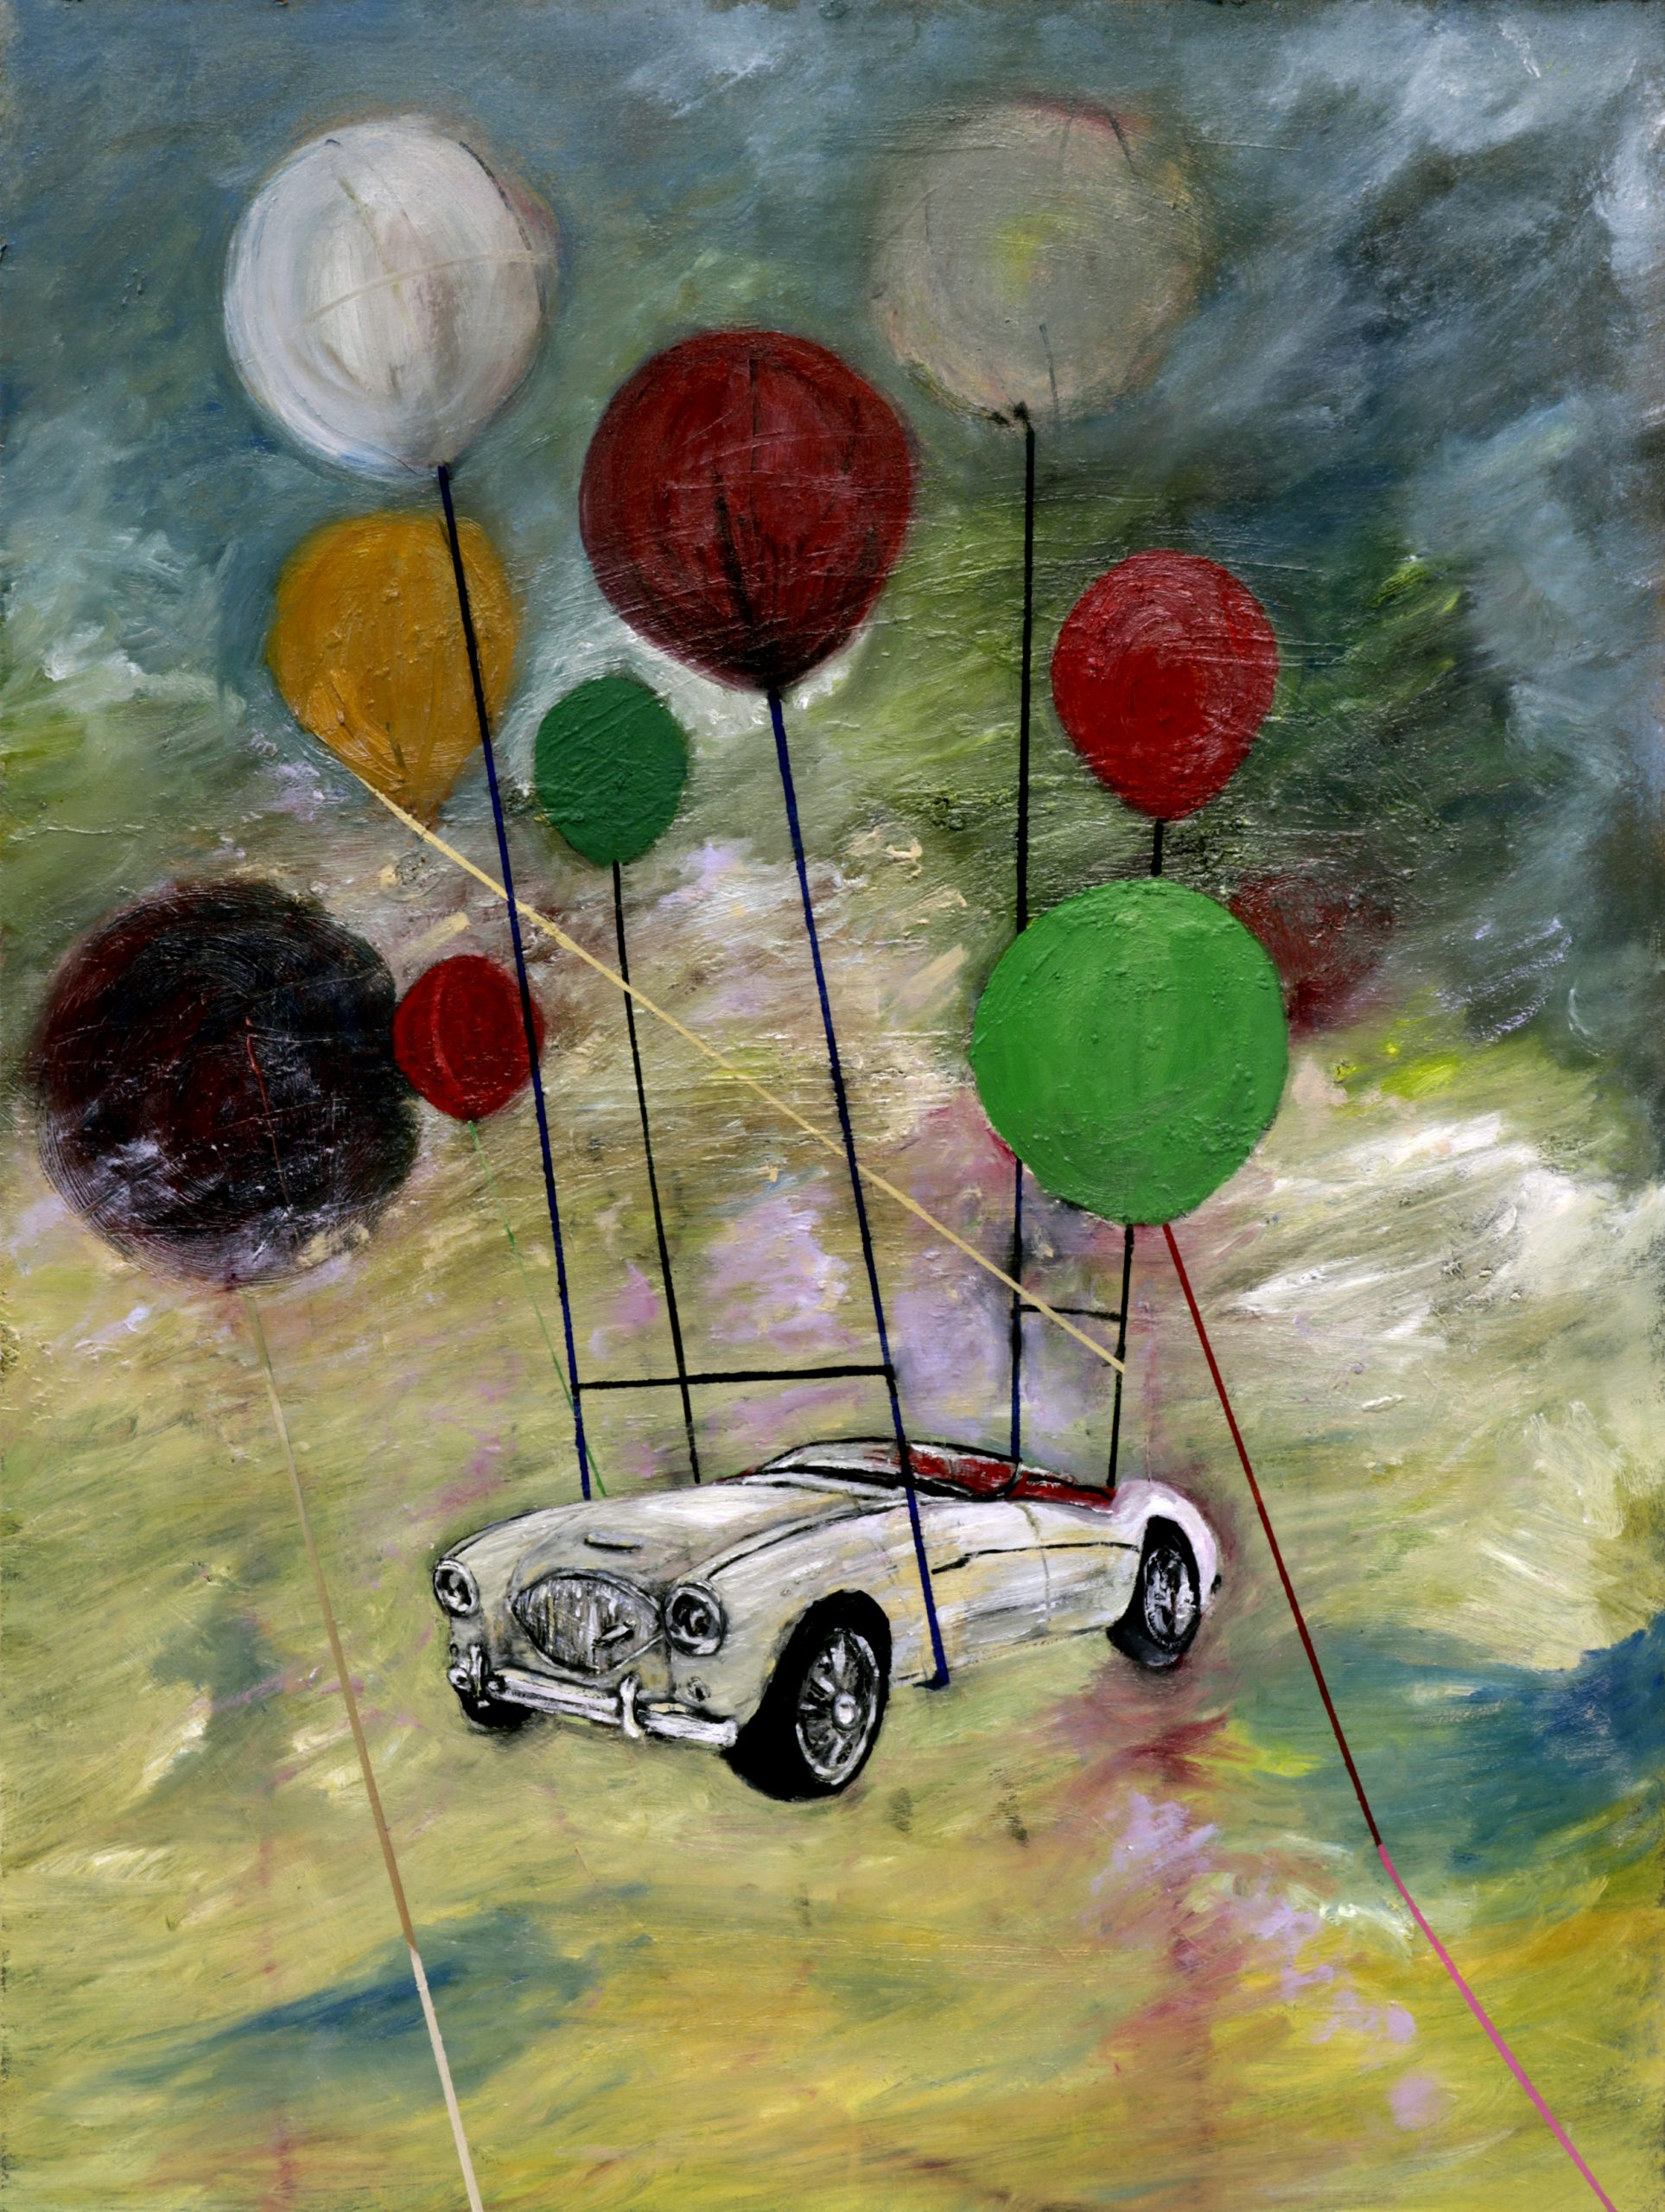 Oil paintings by Richard Taylor in Glasgow. The image depicts a vintage car raised high about a blanket of clouds. The car is mostly white in colour with red trimmings and black wheels. The car is held up by several brightly coloured balloons.